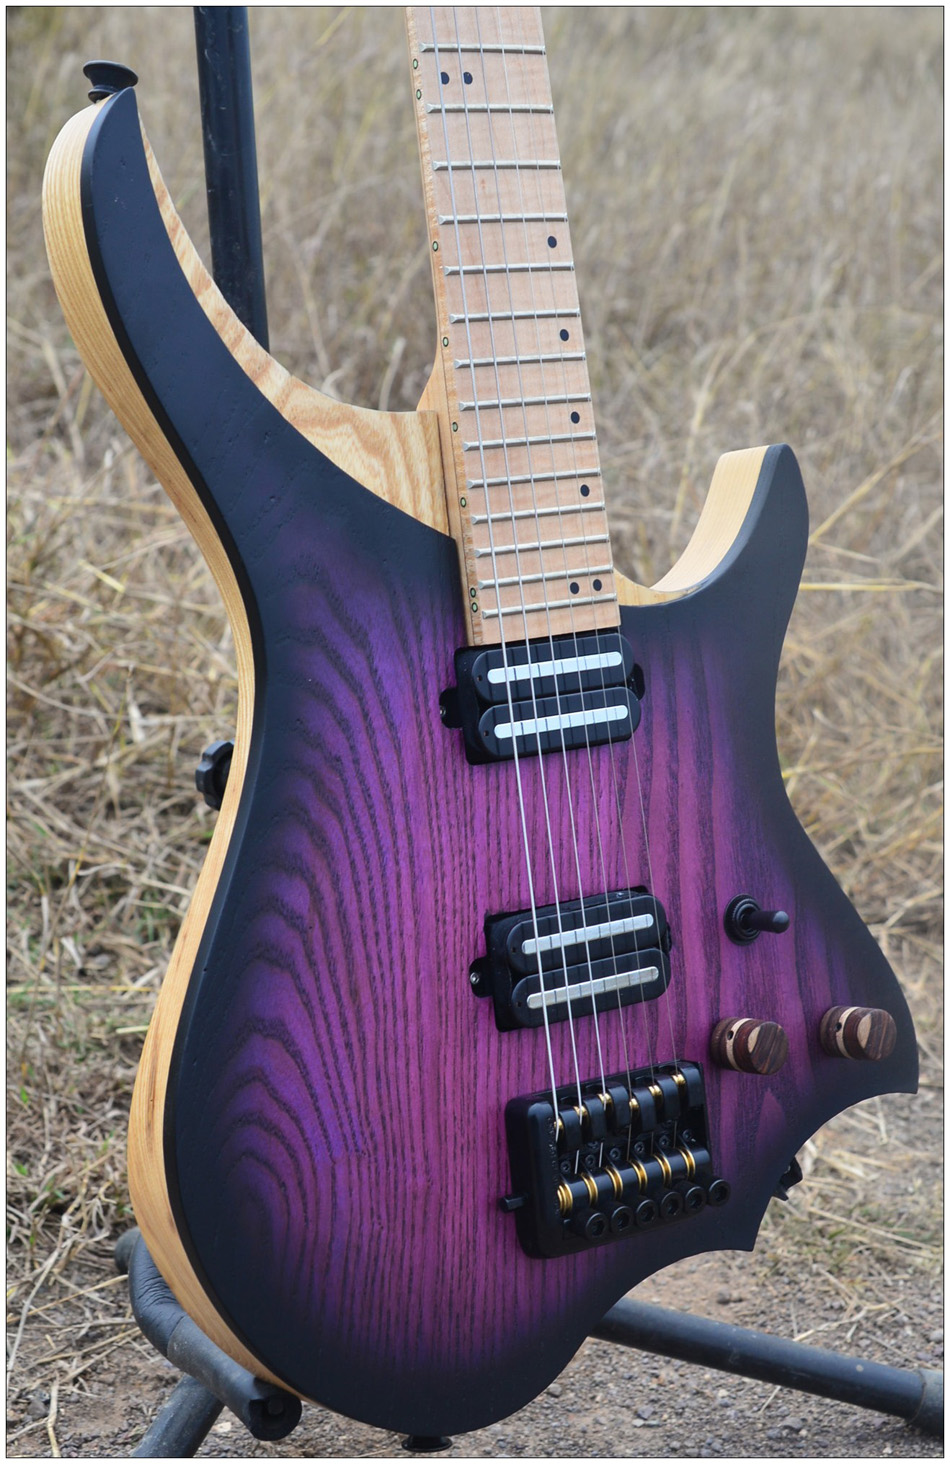 NK Headless Electric Guitar steinberger style Model Purple burst Color Flame maple Neck in stock Guitar free shipping fashion windproof butane gase lighter w red wine bottle opener 2 led lights gold silver